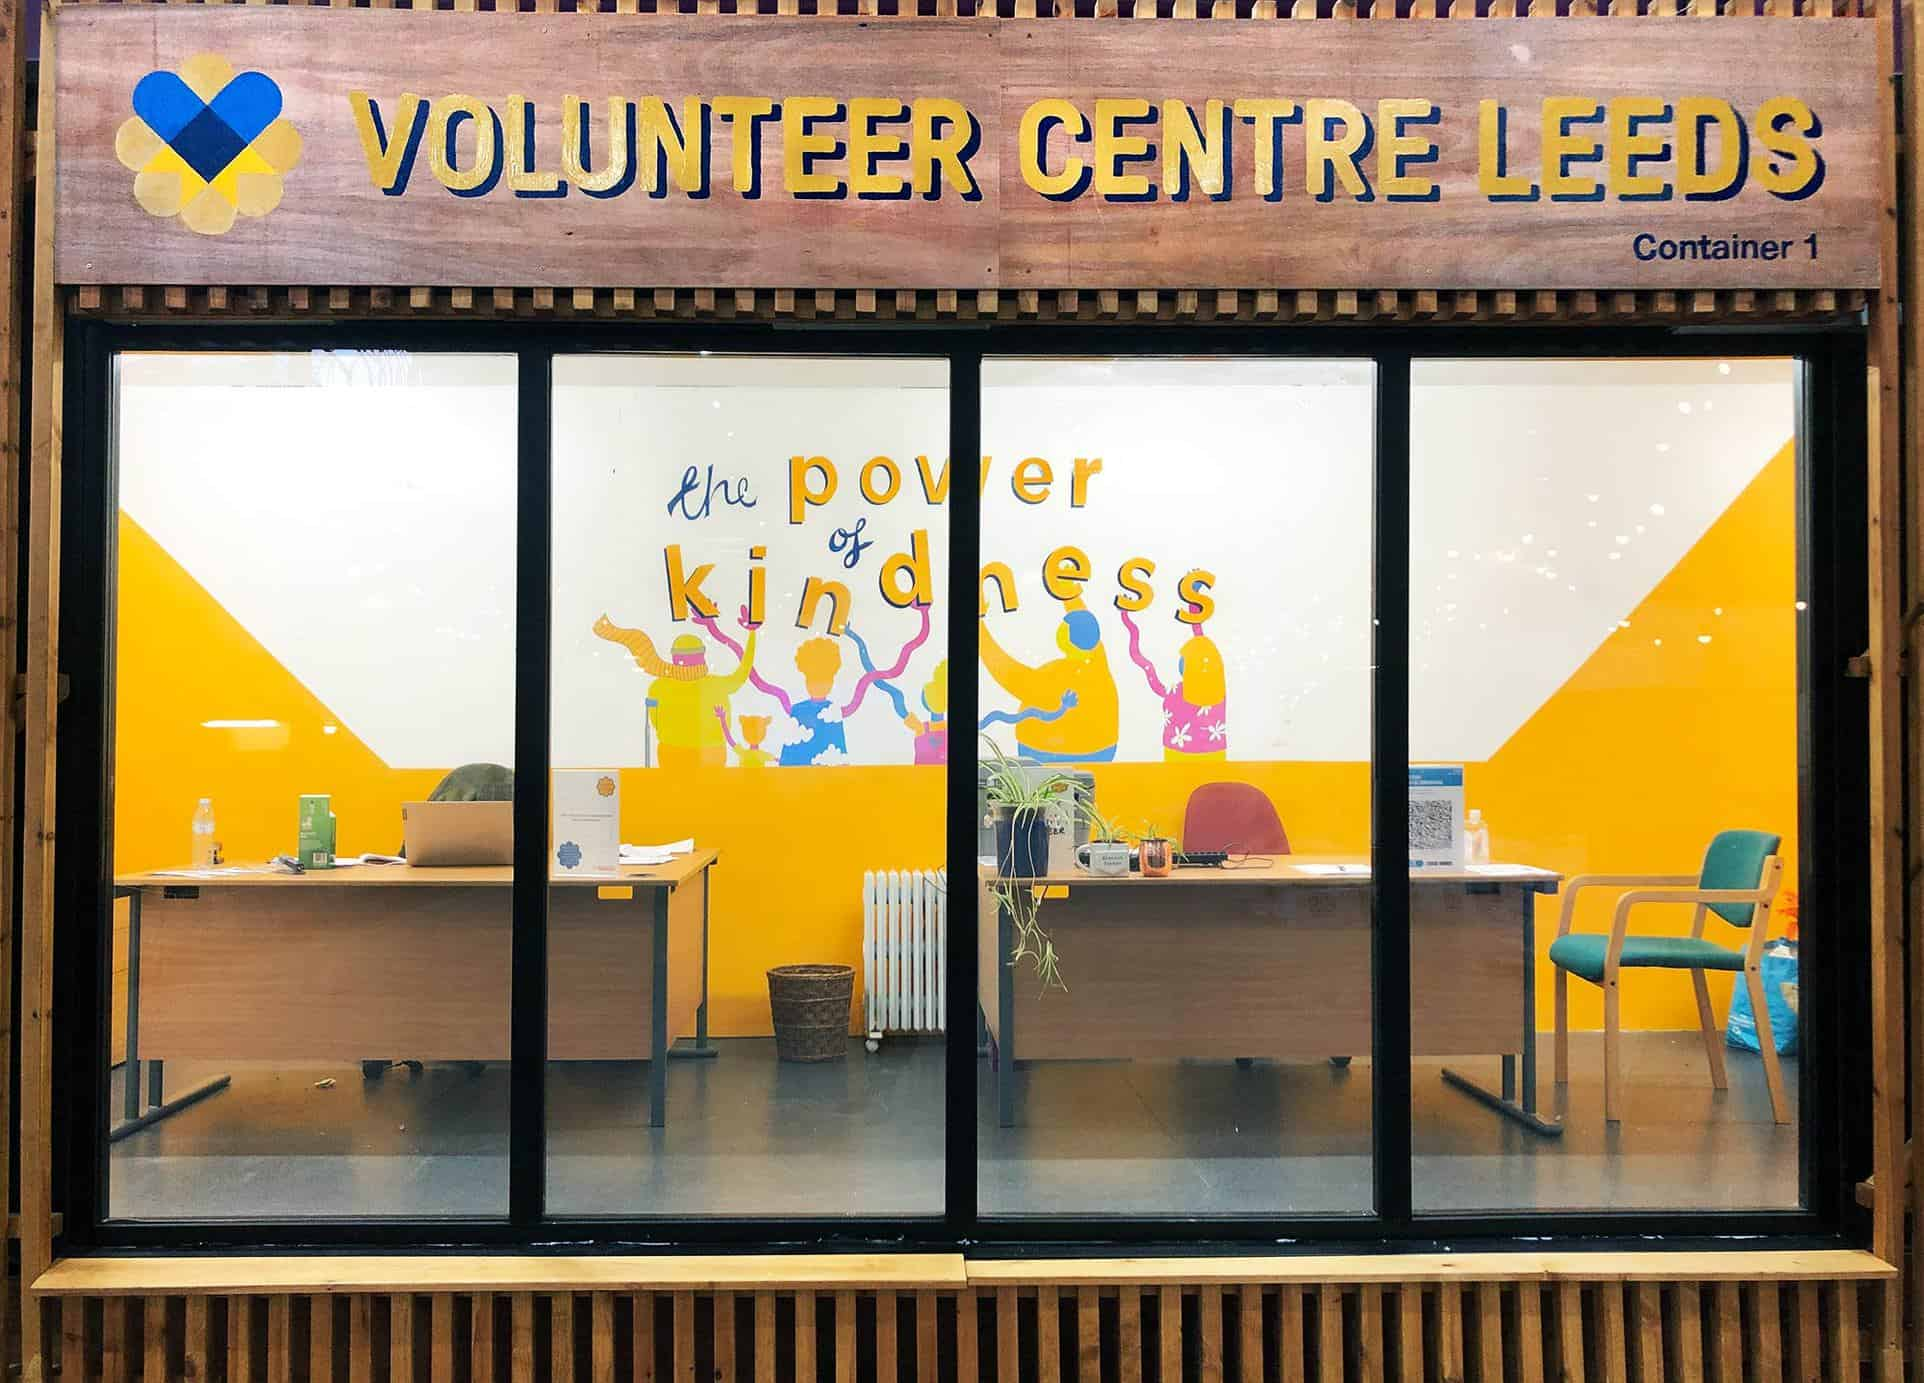 Photo of the front of the volunteer centre, there is a big glass window showing inside the centre where there are two desks and a colourful mural on the back wall which has the words the poser of kindness painted on